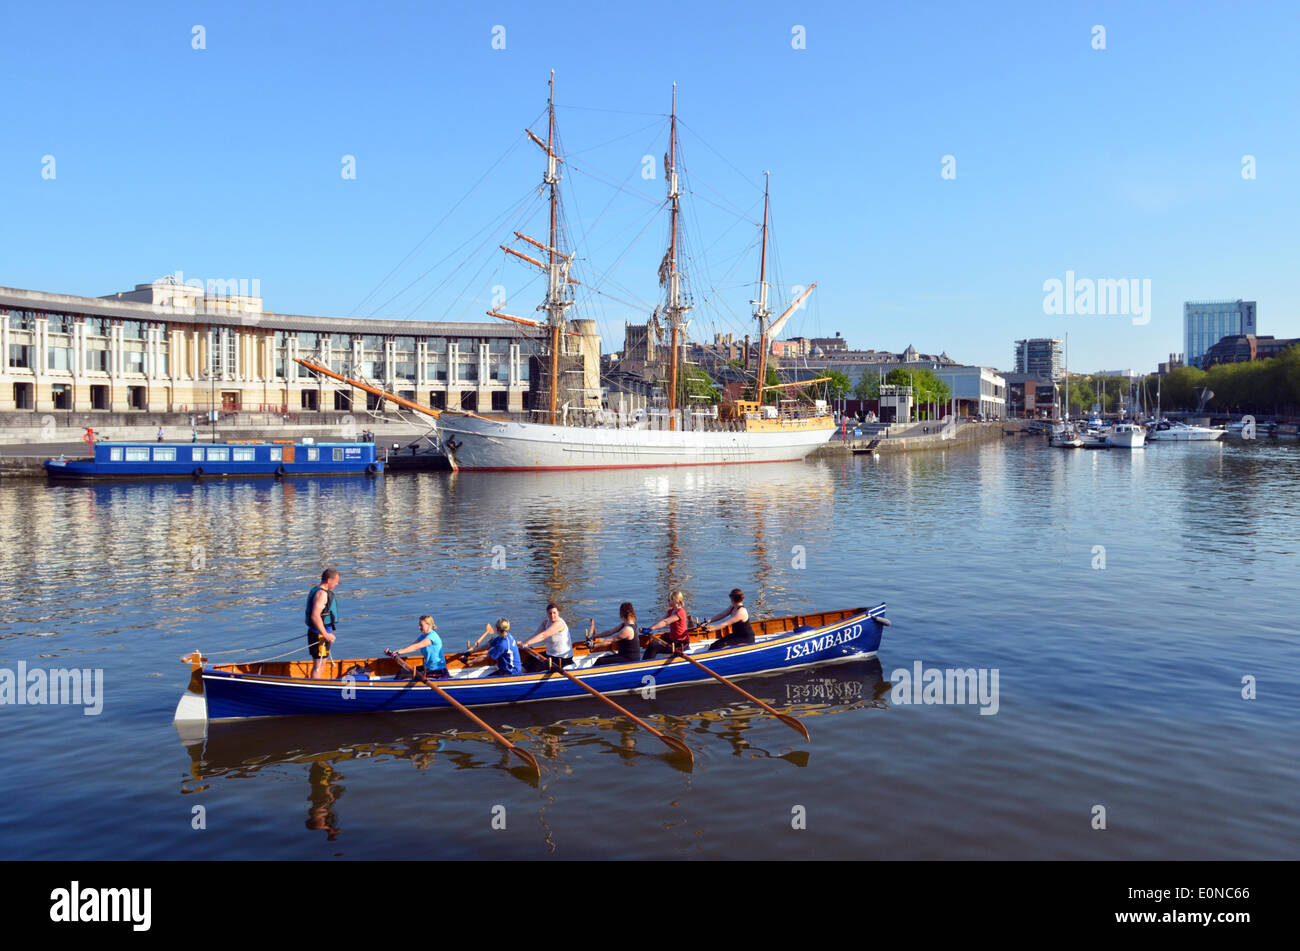 Bristol, UK. 17th May, 2014. Early morning rowers seen passing  a Tall Ship seen in the back ground of the Floating Harbour in the City of Bristol in the UK, as the sun rises to a wonderfull day ahead. Forecasters are predicting warm and sunny weather for the weekend. Credit:  Robert Timoney/Alamy Live News - Stock Image